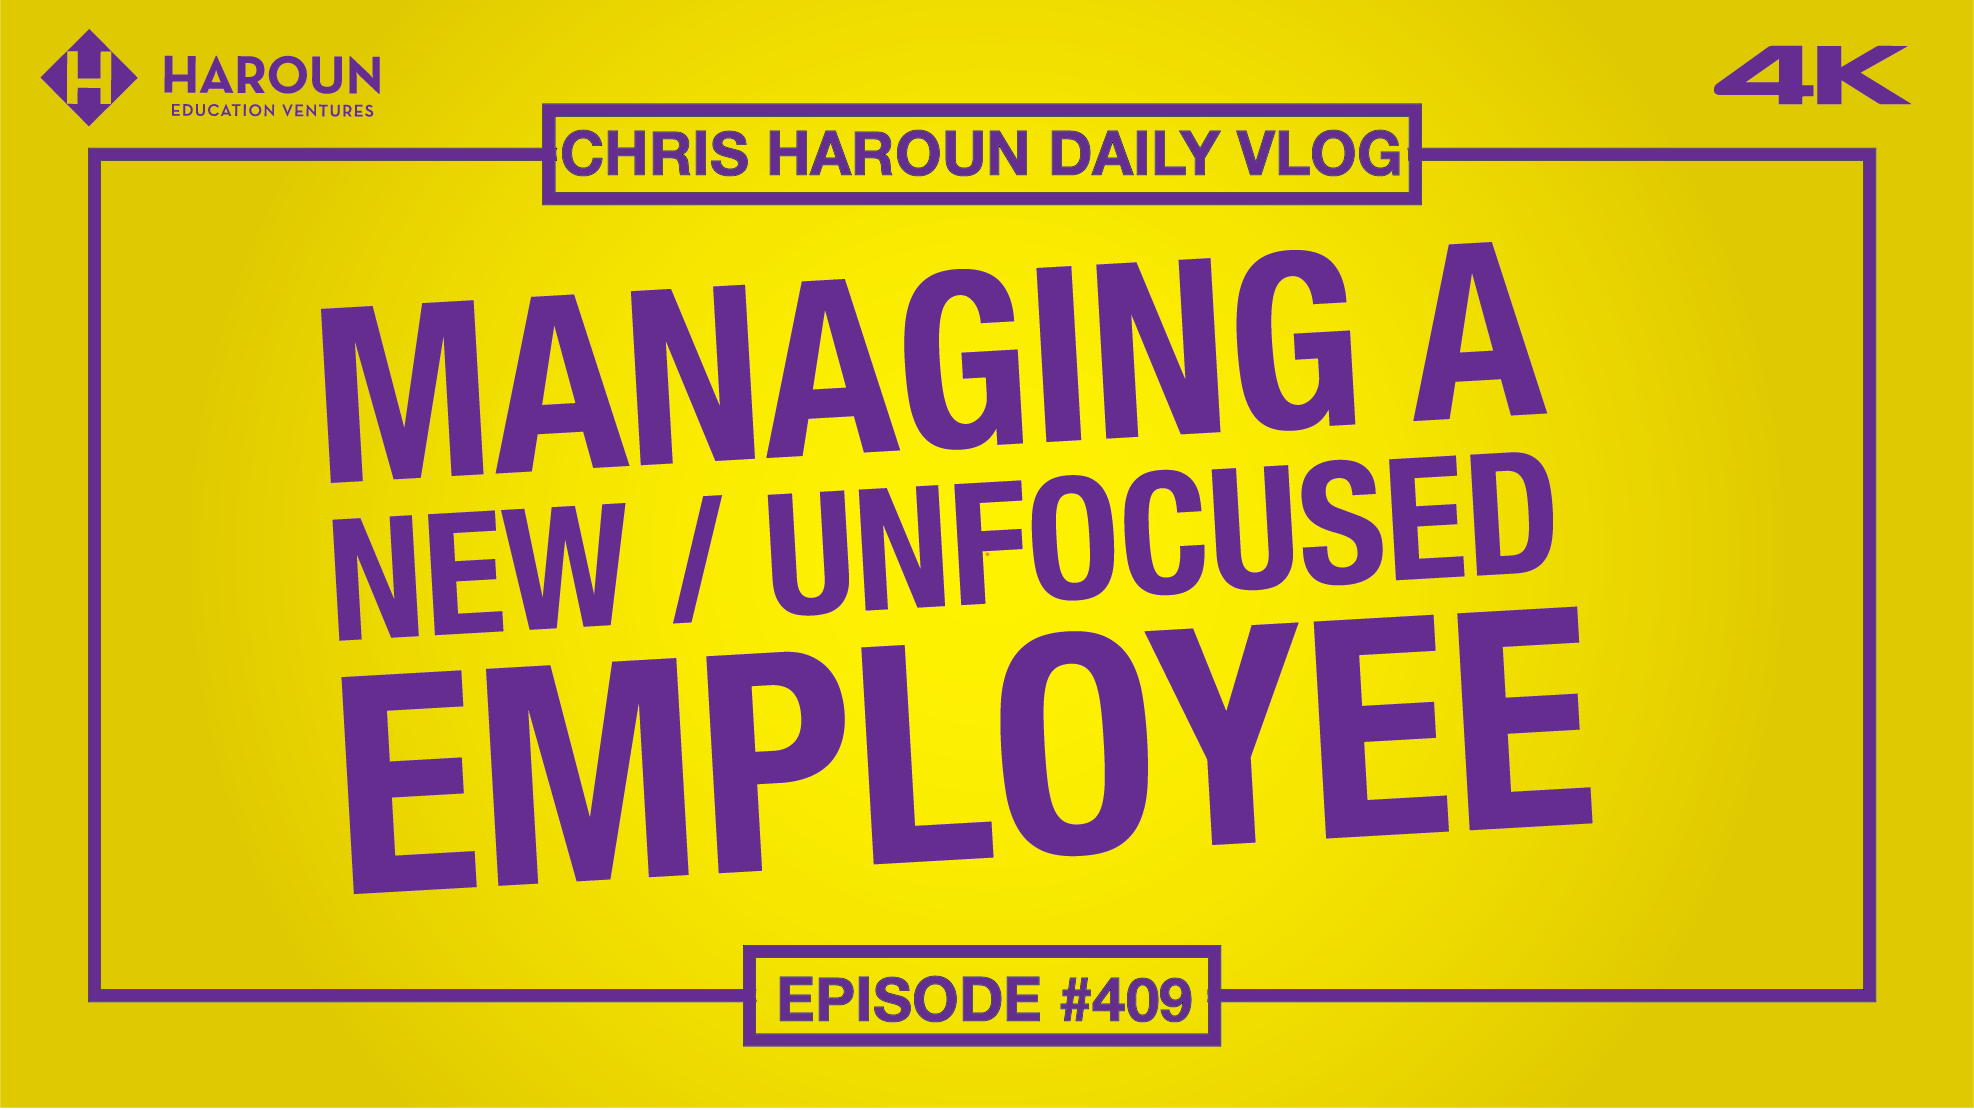 VLOG_409_9_13_2019_Managing a New : Unfocused Employee.png